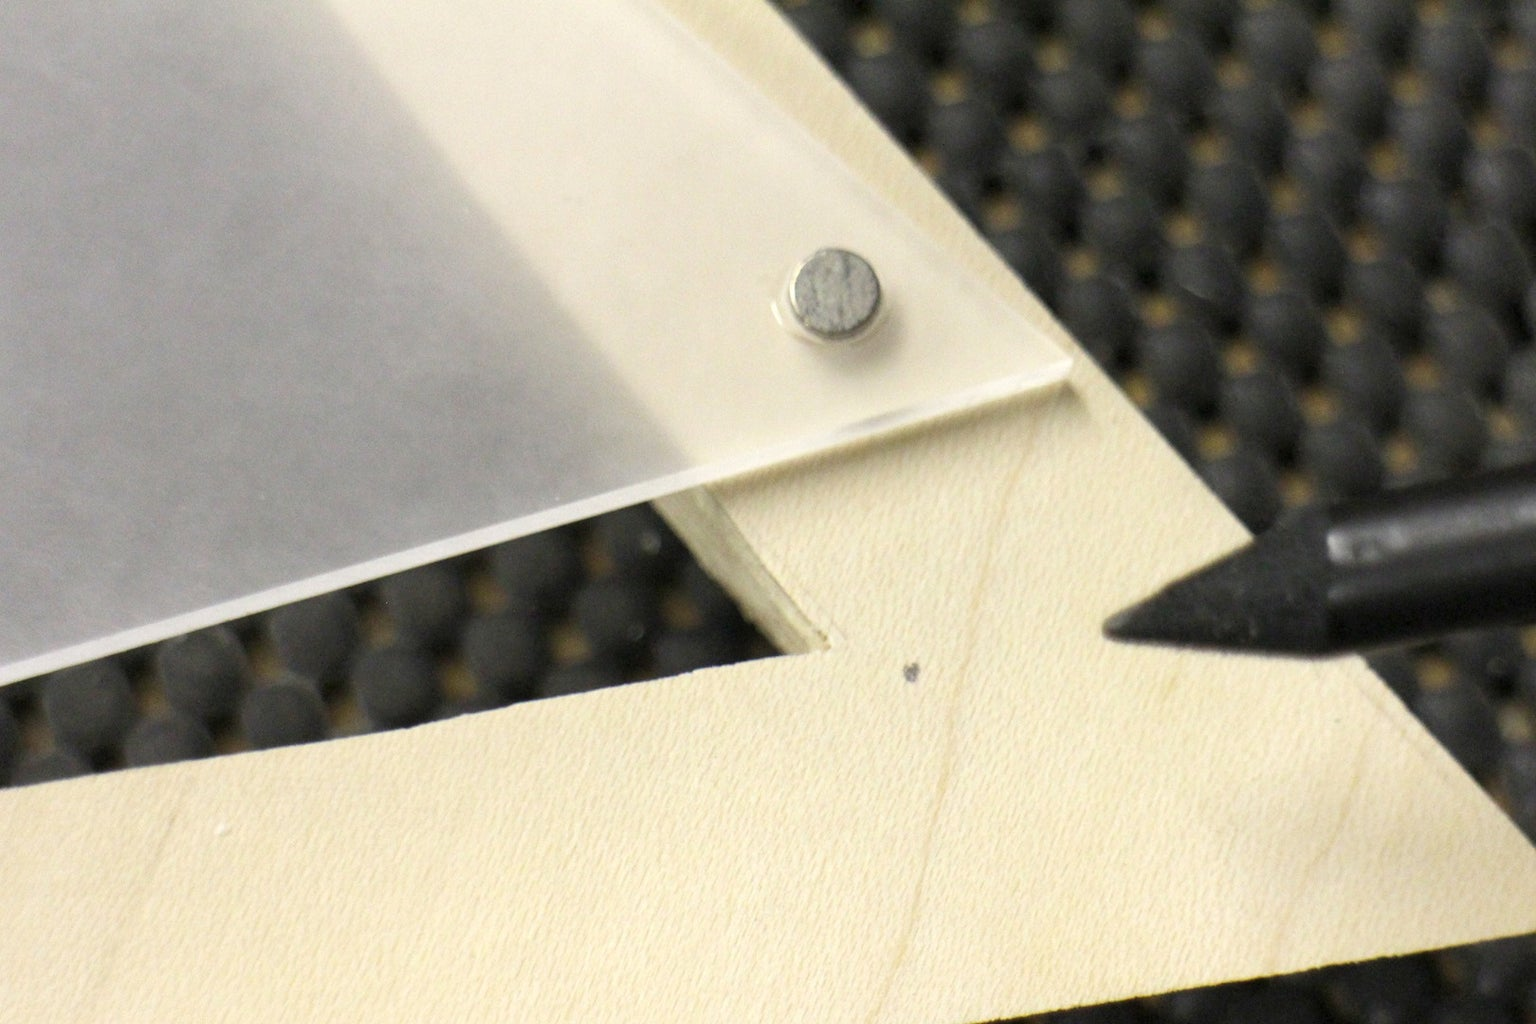 Metal Attchment Points